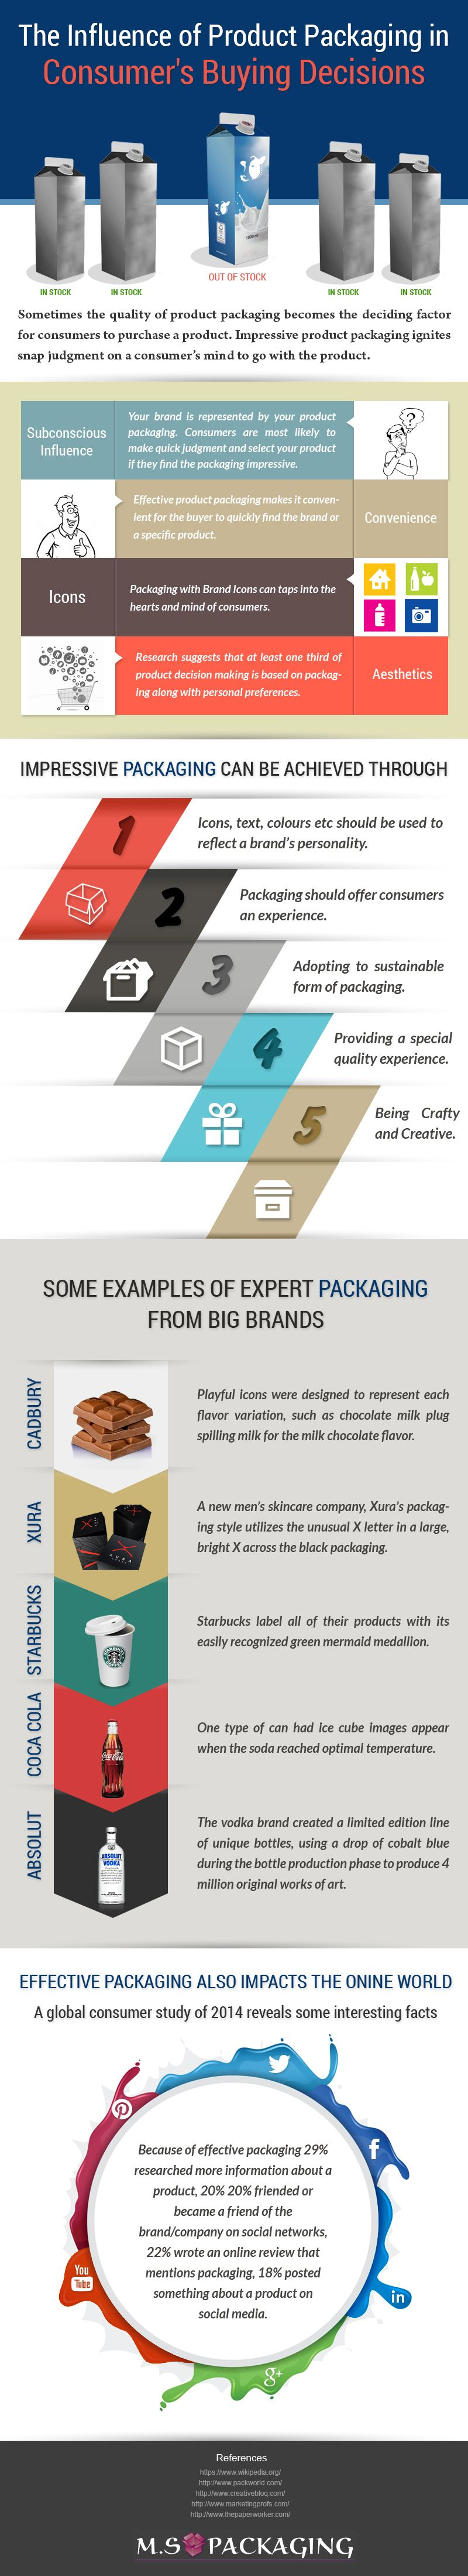 The Influence of Product Packaging in Consumer